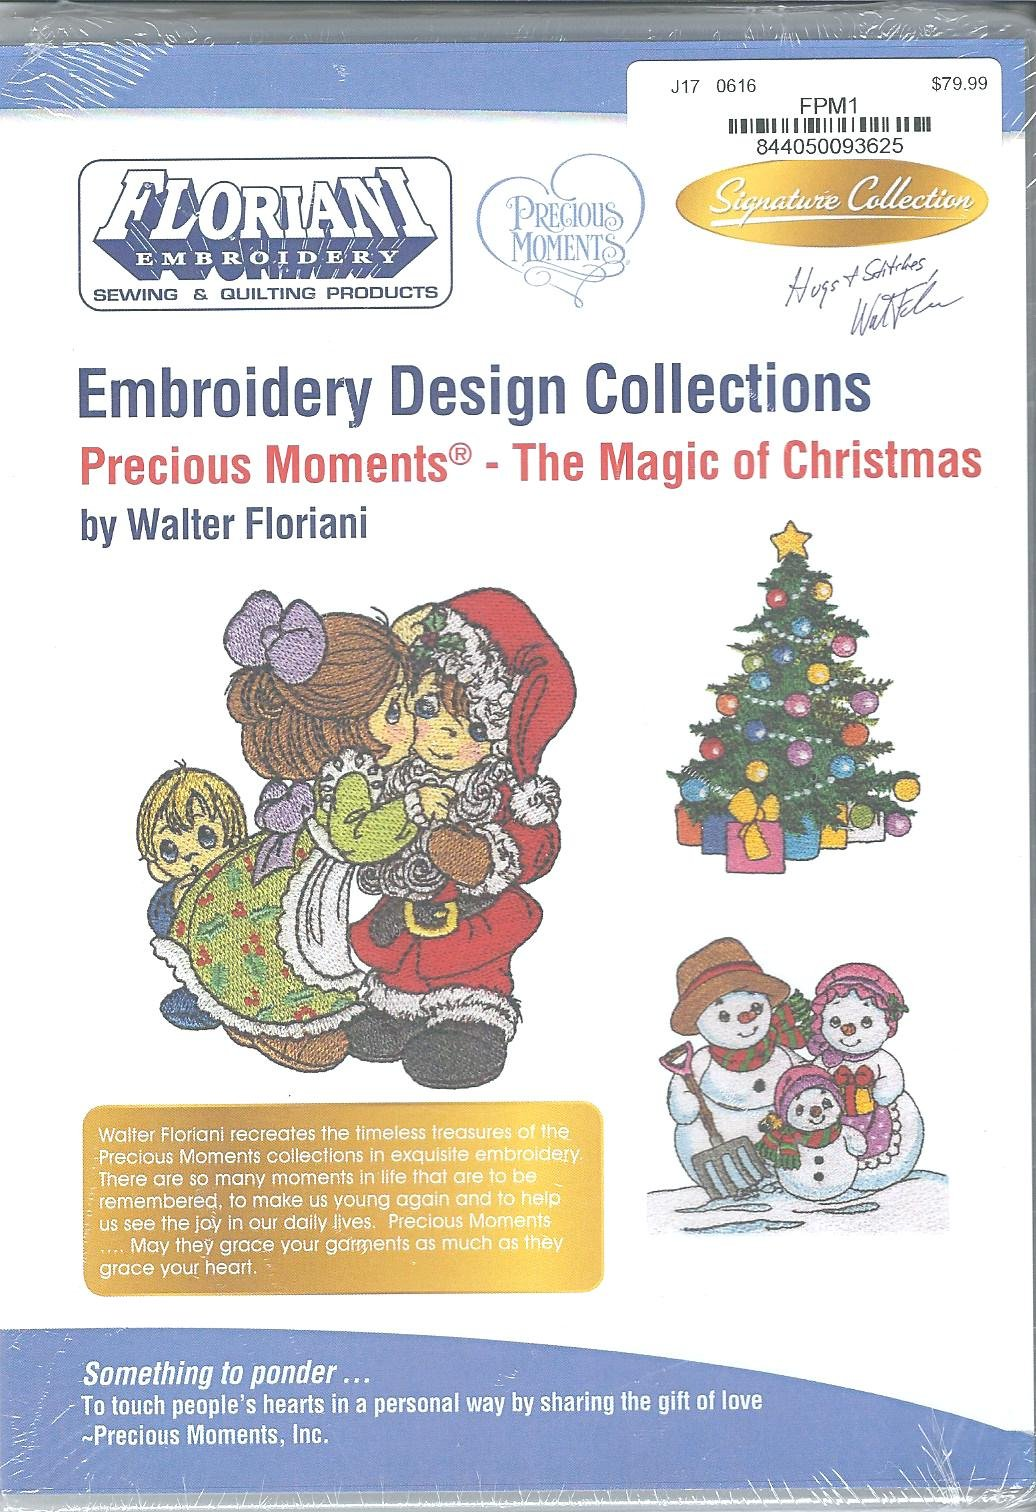 Floriani Embroidery Design Collection Precious Moments The Magic of Christmas